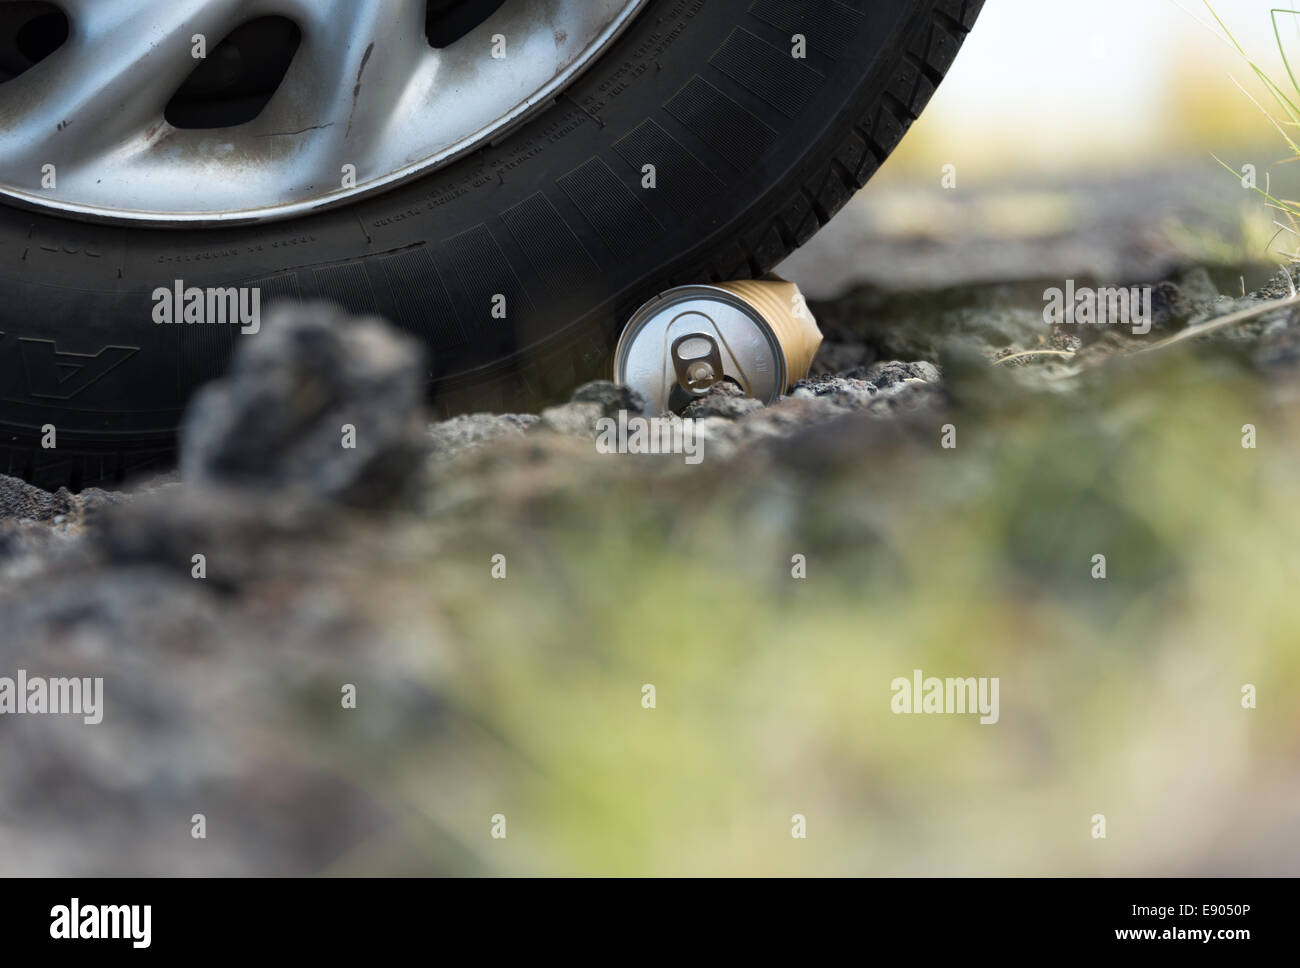 Car drove on trash can - Stock Image